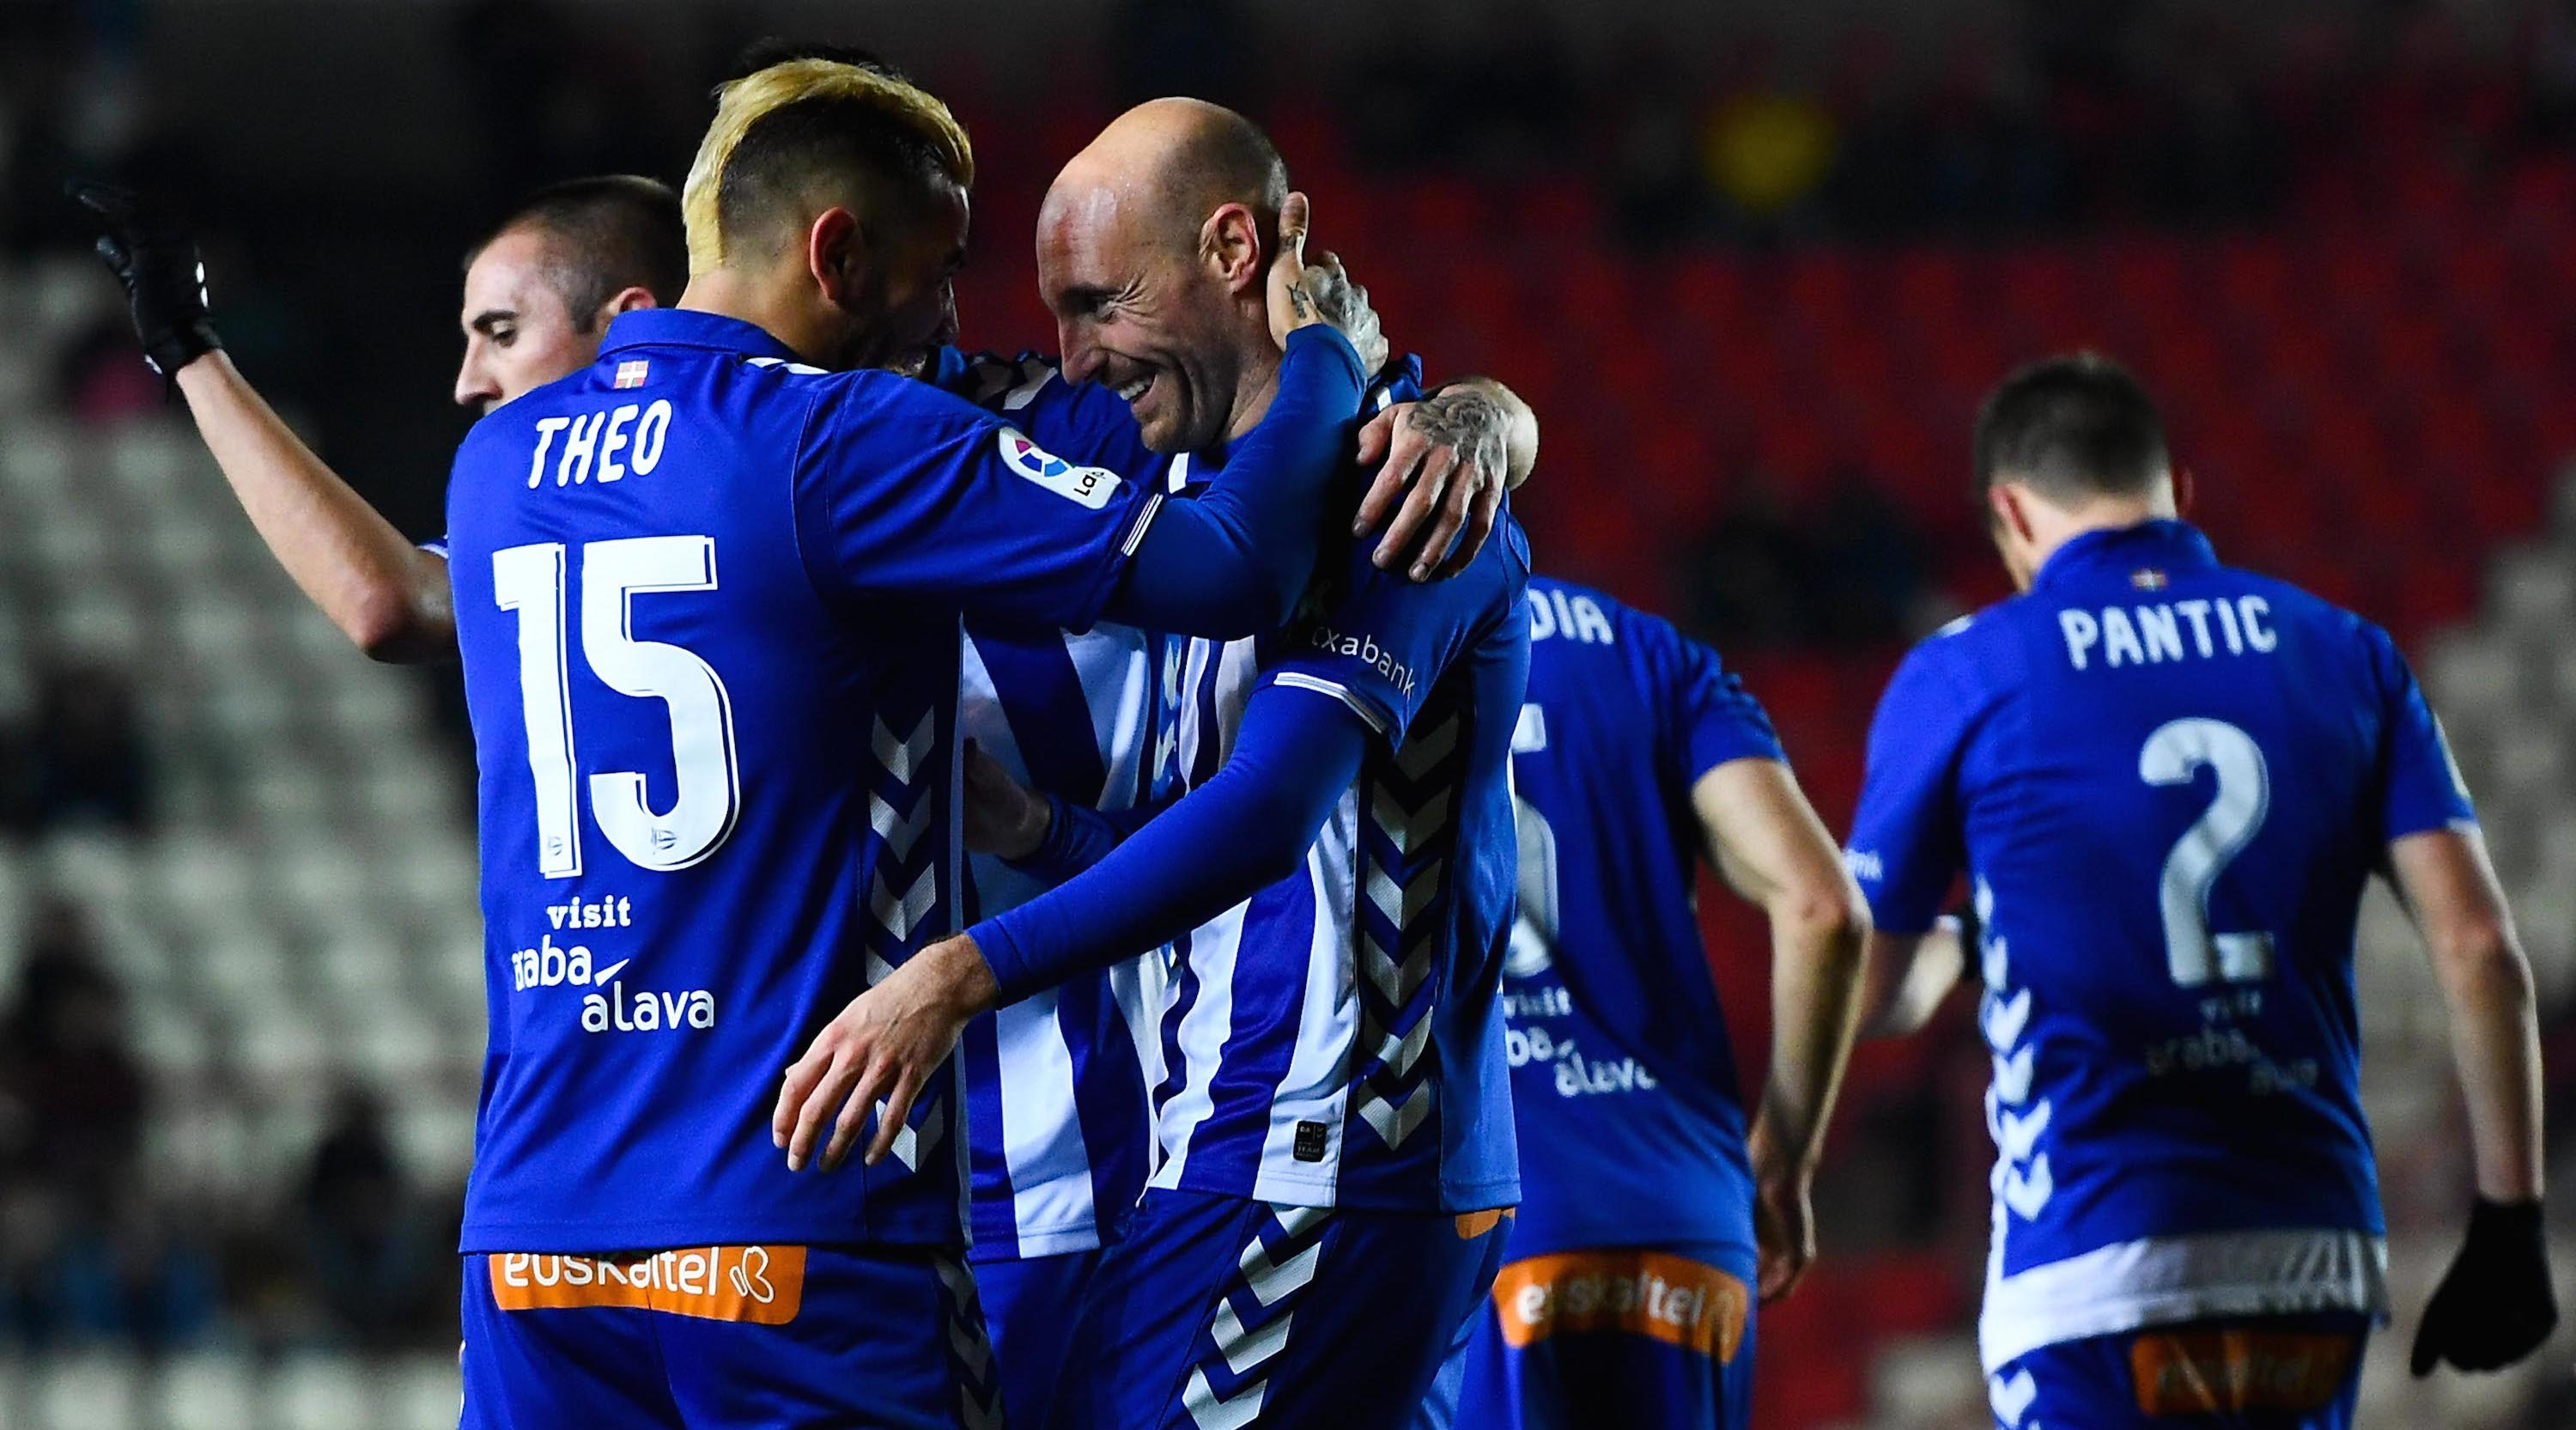 TARRAGONA, SPAIN - DECEMBER 01: Gaizka Toquero (C) of Deportivo Alaves celebrates with his team mate Theo Hernandez of Deportivo Alaves after scoring his team's first goal during the Copa del Rey round of 32 first leg match at Nou Estadi on December 1, 2016 in Tarragona, Spain. (Photo by David Ramos/Getty Images)